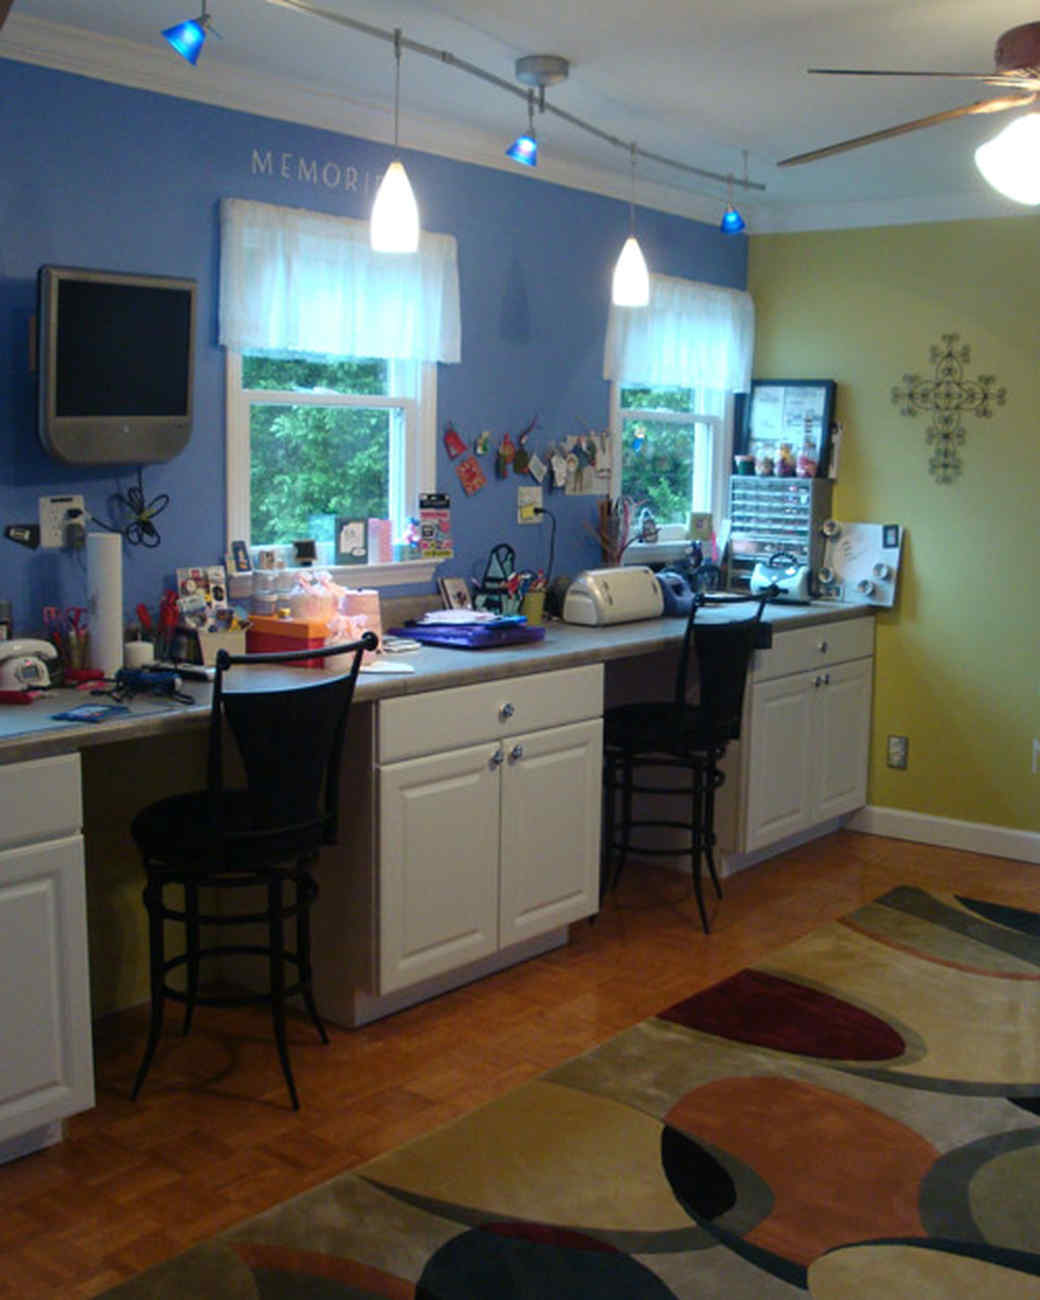 994 Best Images About Basement Playroom On Pinterest Of Martha Installing Electrical For Your 21 Things You39ll Need Sewing And Craft Room Designs Stewart Studio